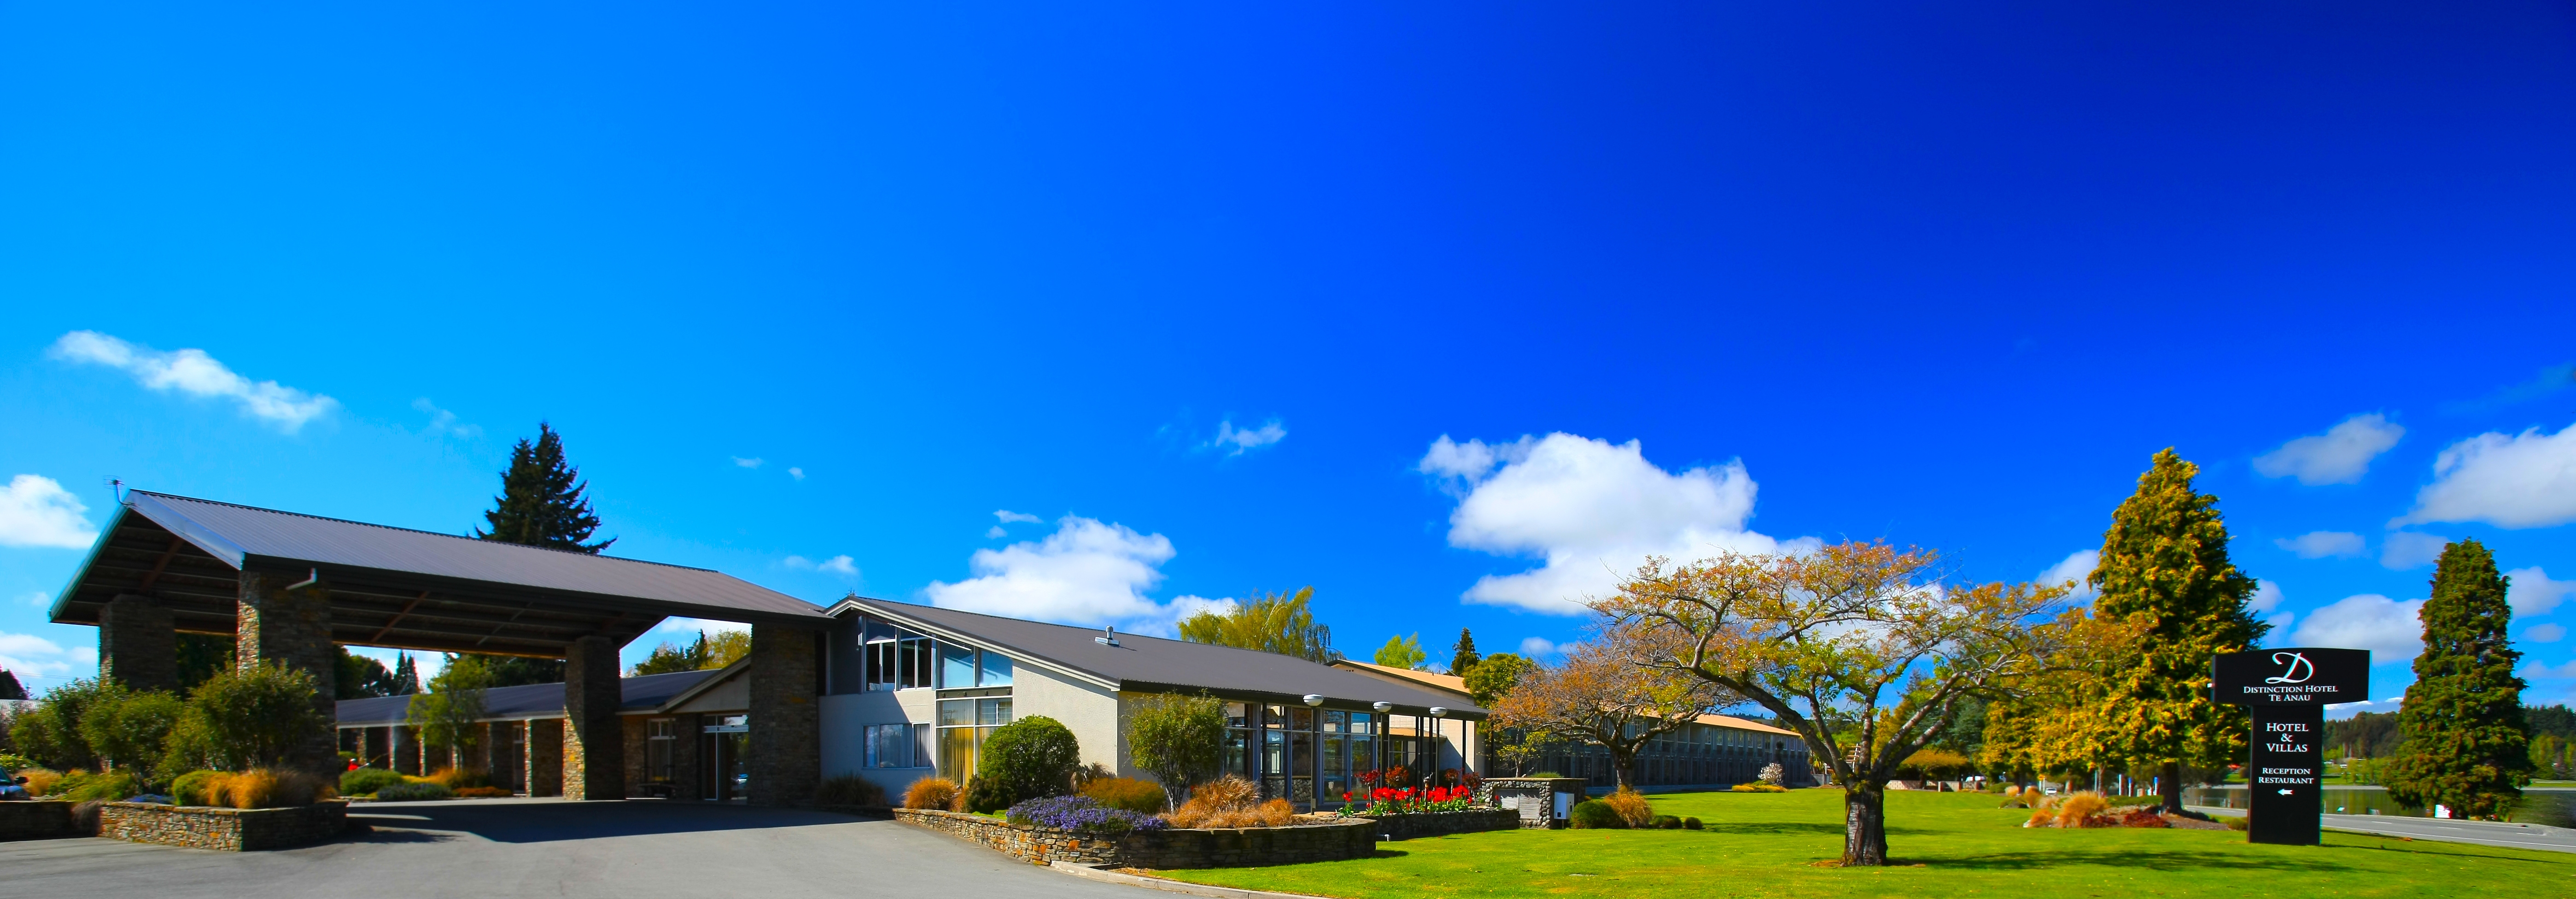 Image gallery for distinction hotels new zealand rotorua for Distinctive villas